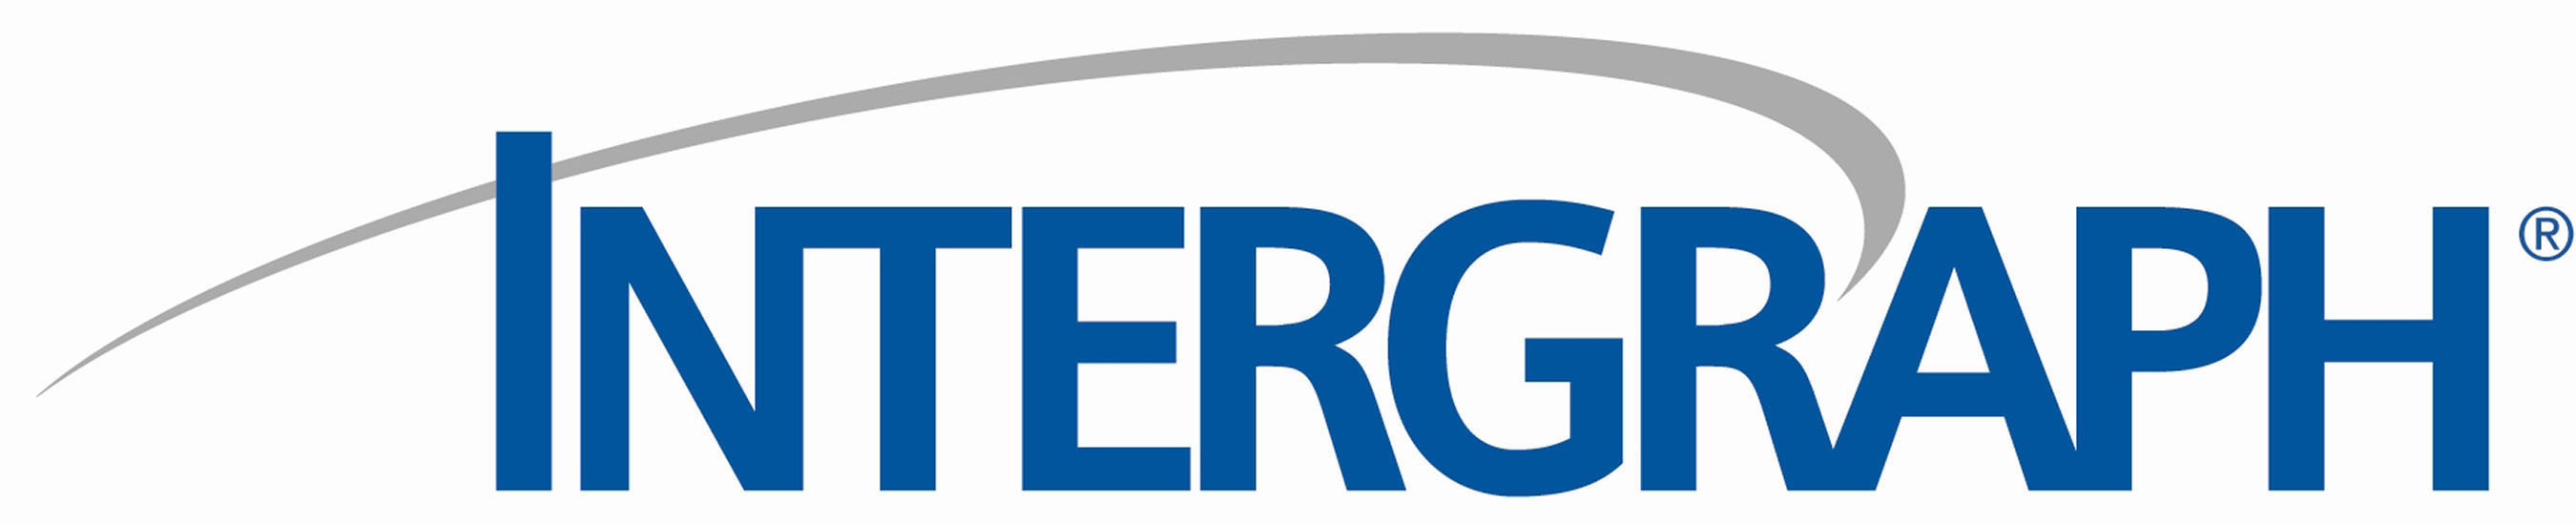 Gazprom Neft Uses Intergraph' SmartPlant' Enterprise for Owner Operators Technology to Create an Engineering Data Management System